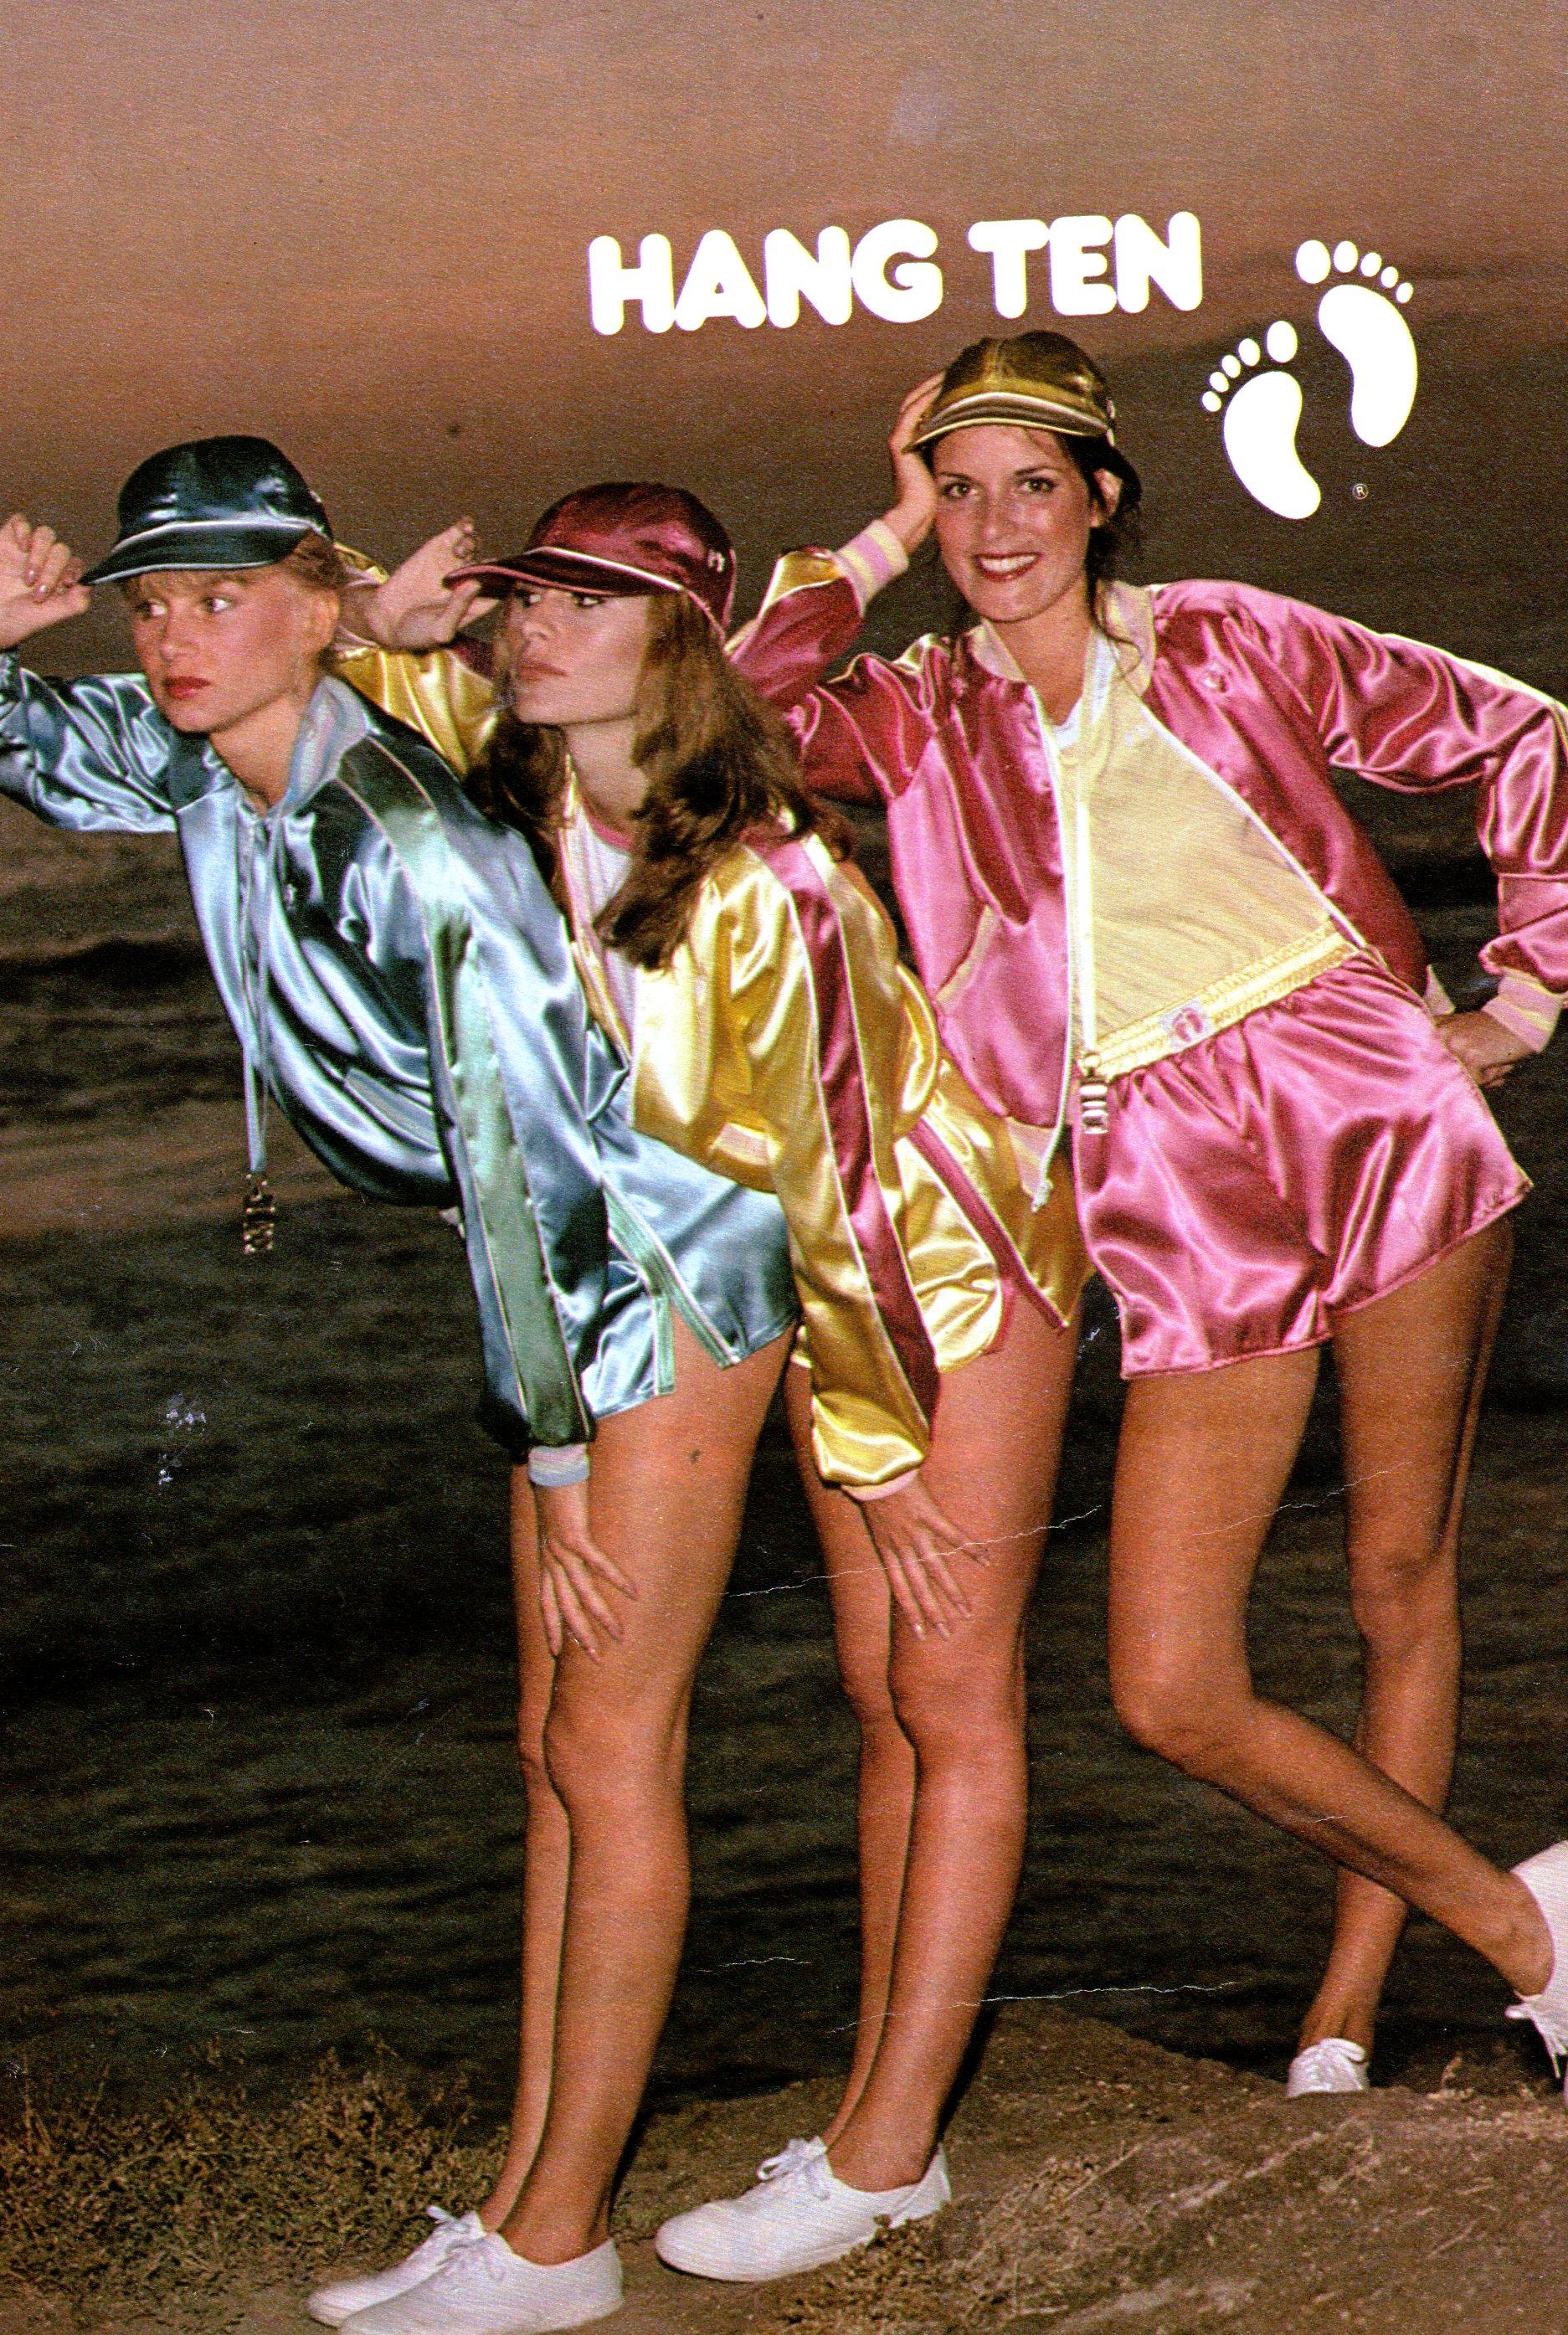 1970s Seventeen Magazine It S That Bohemian Things Again: Hang Ten Ad From 1979. I LOVED These Satin Jackets As A